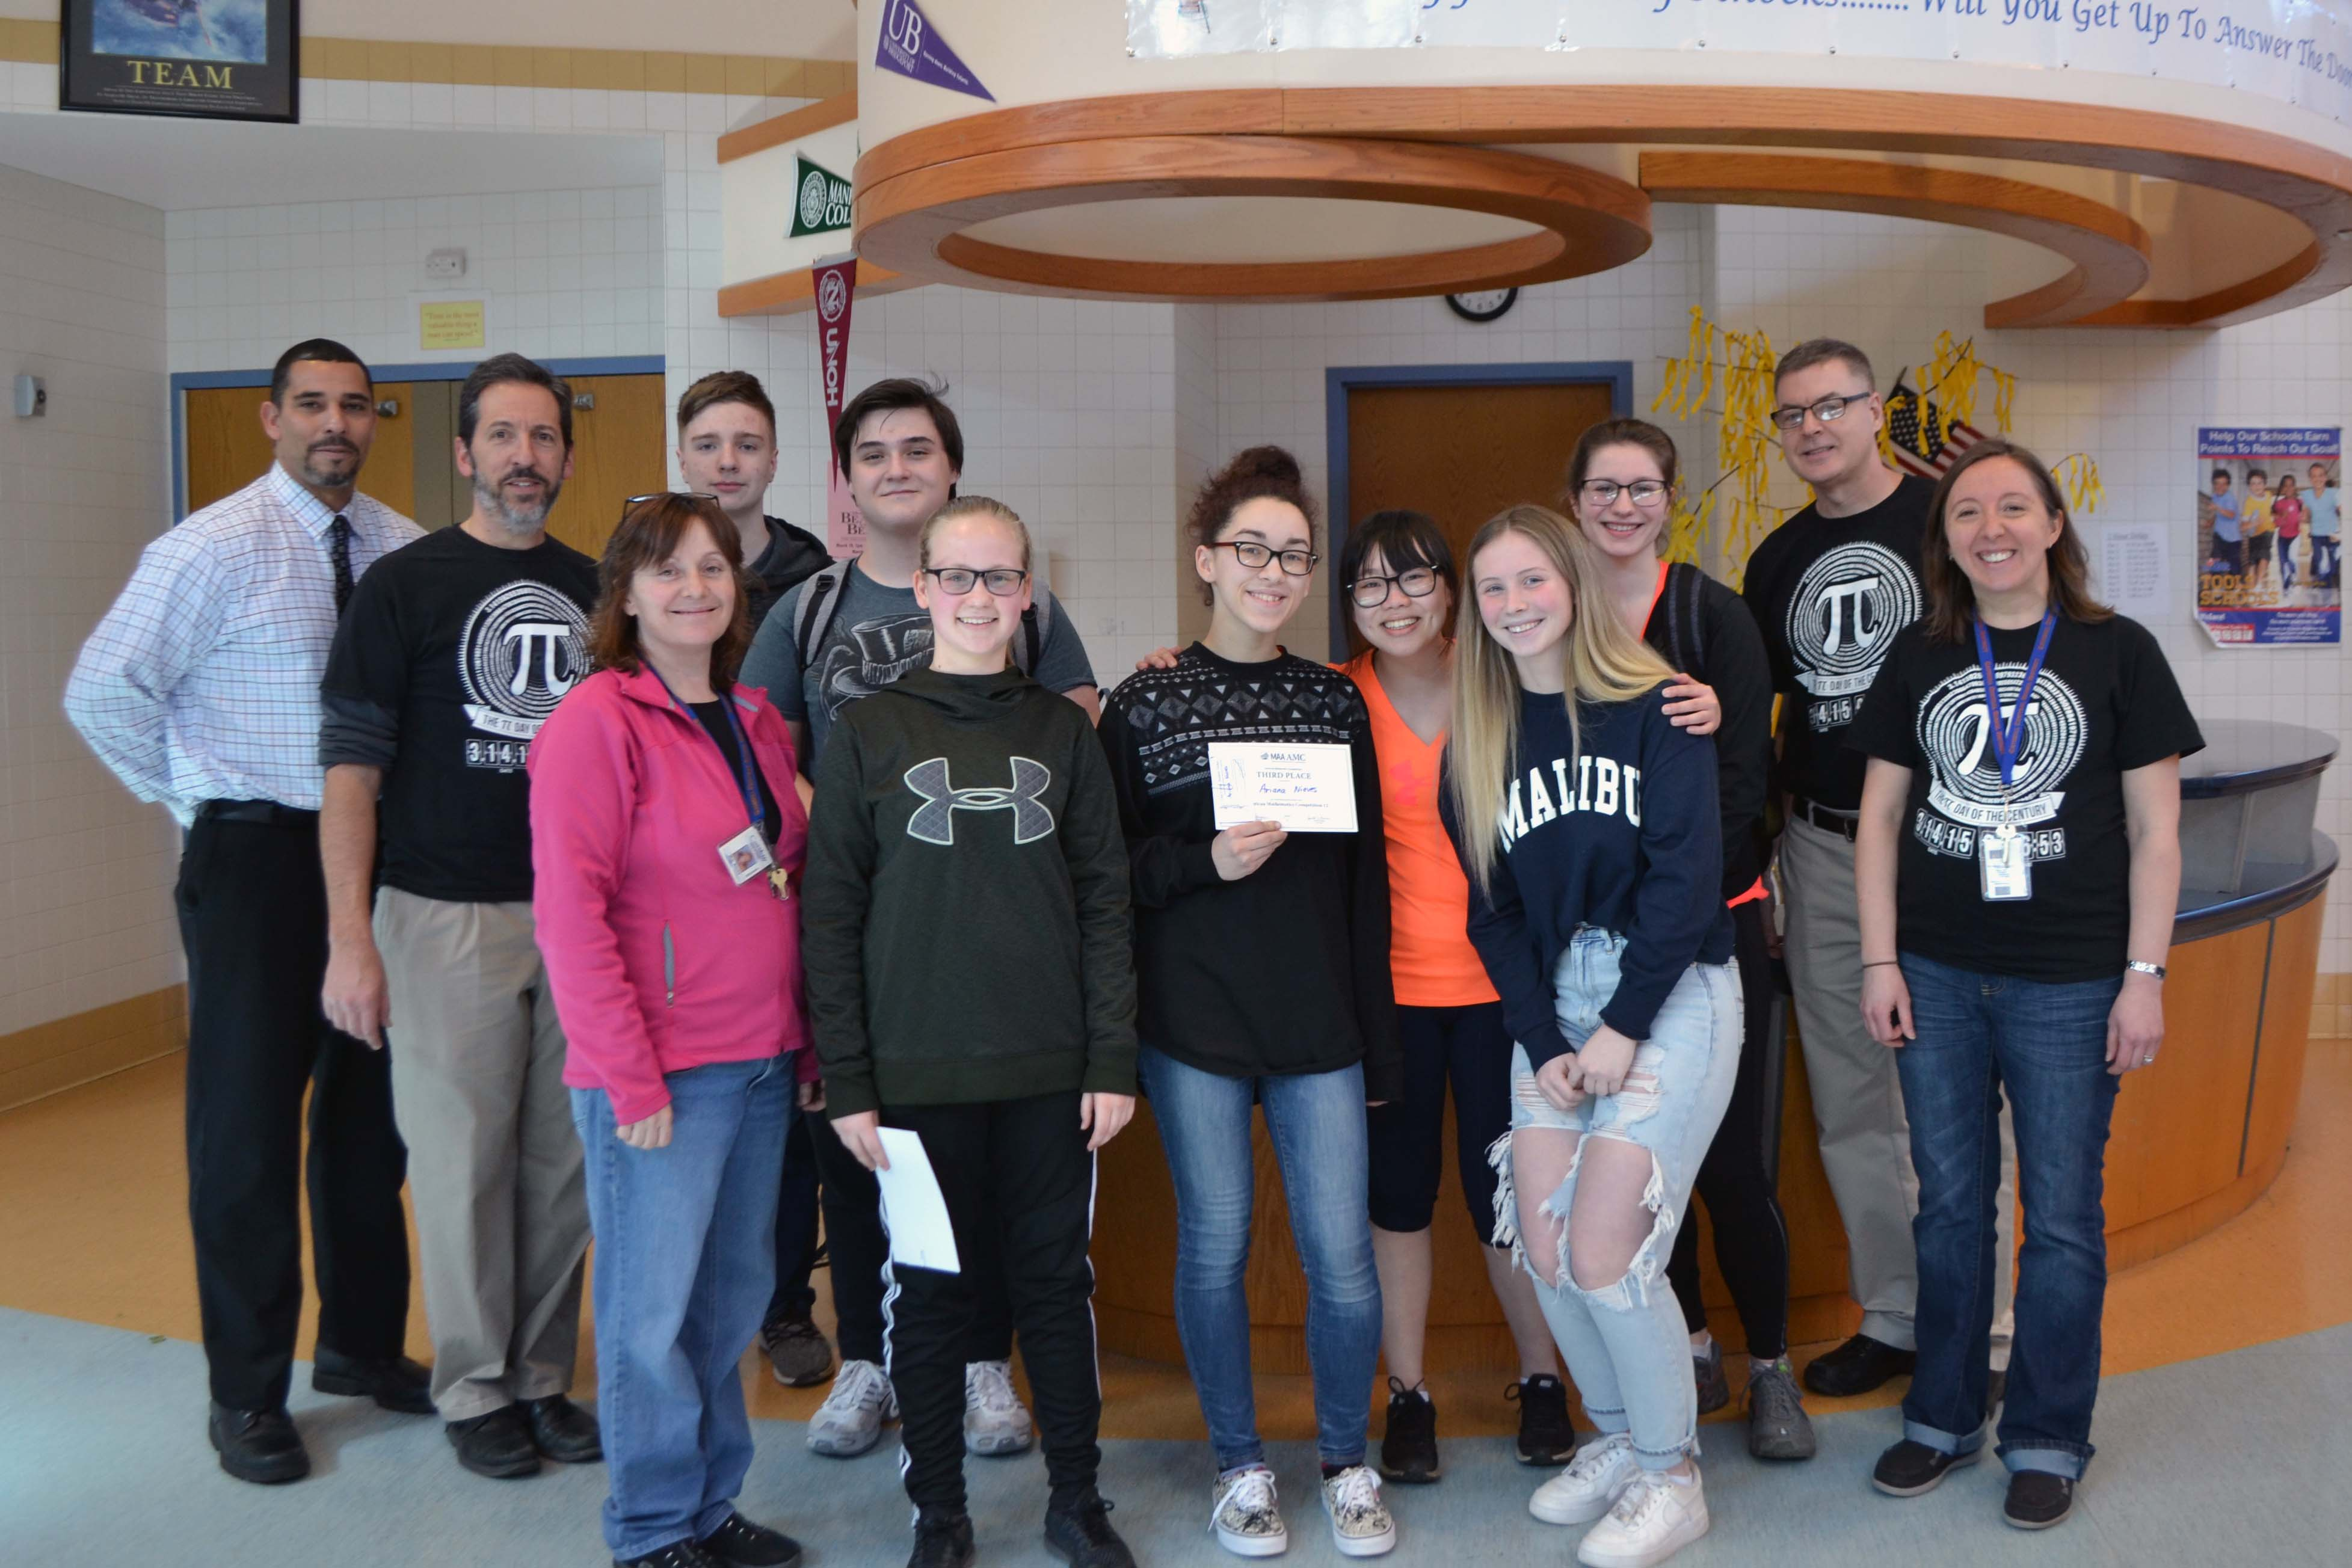 Catskills top finishers and math facuty pose for picture in High School lobby